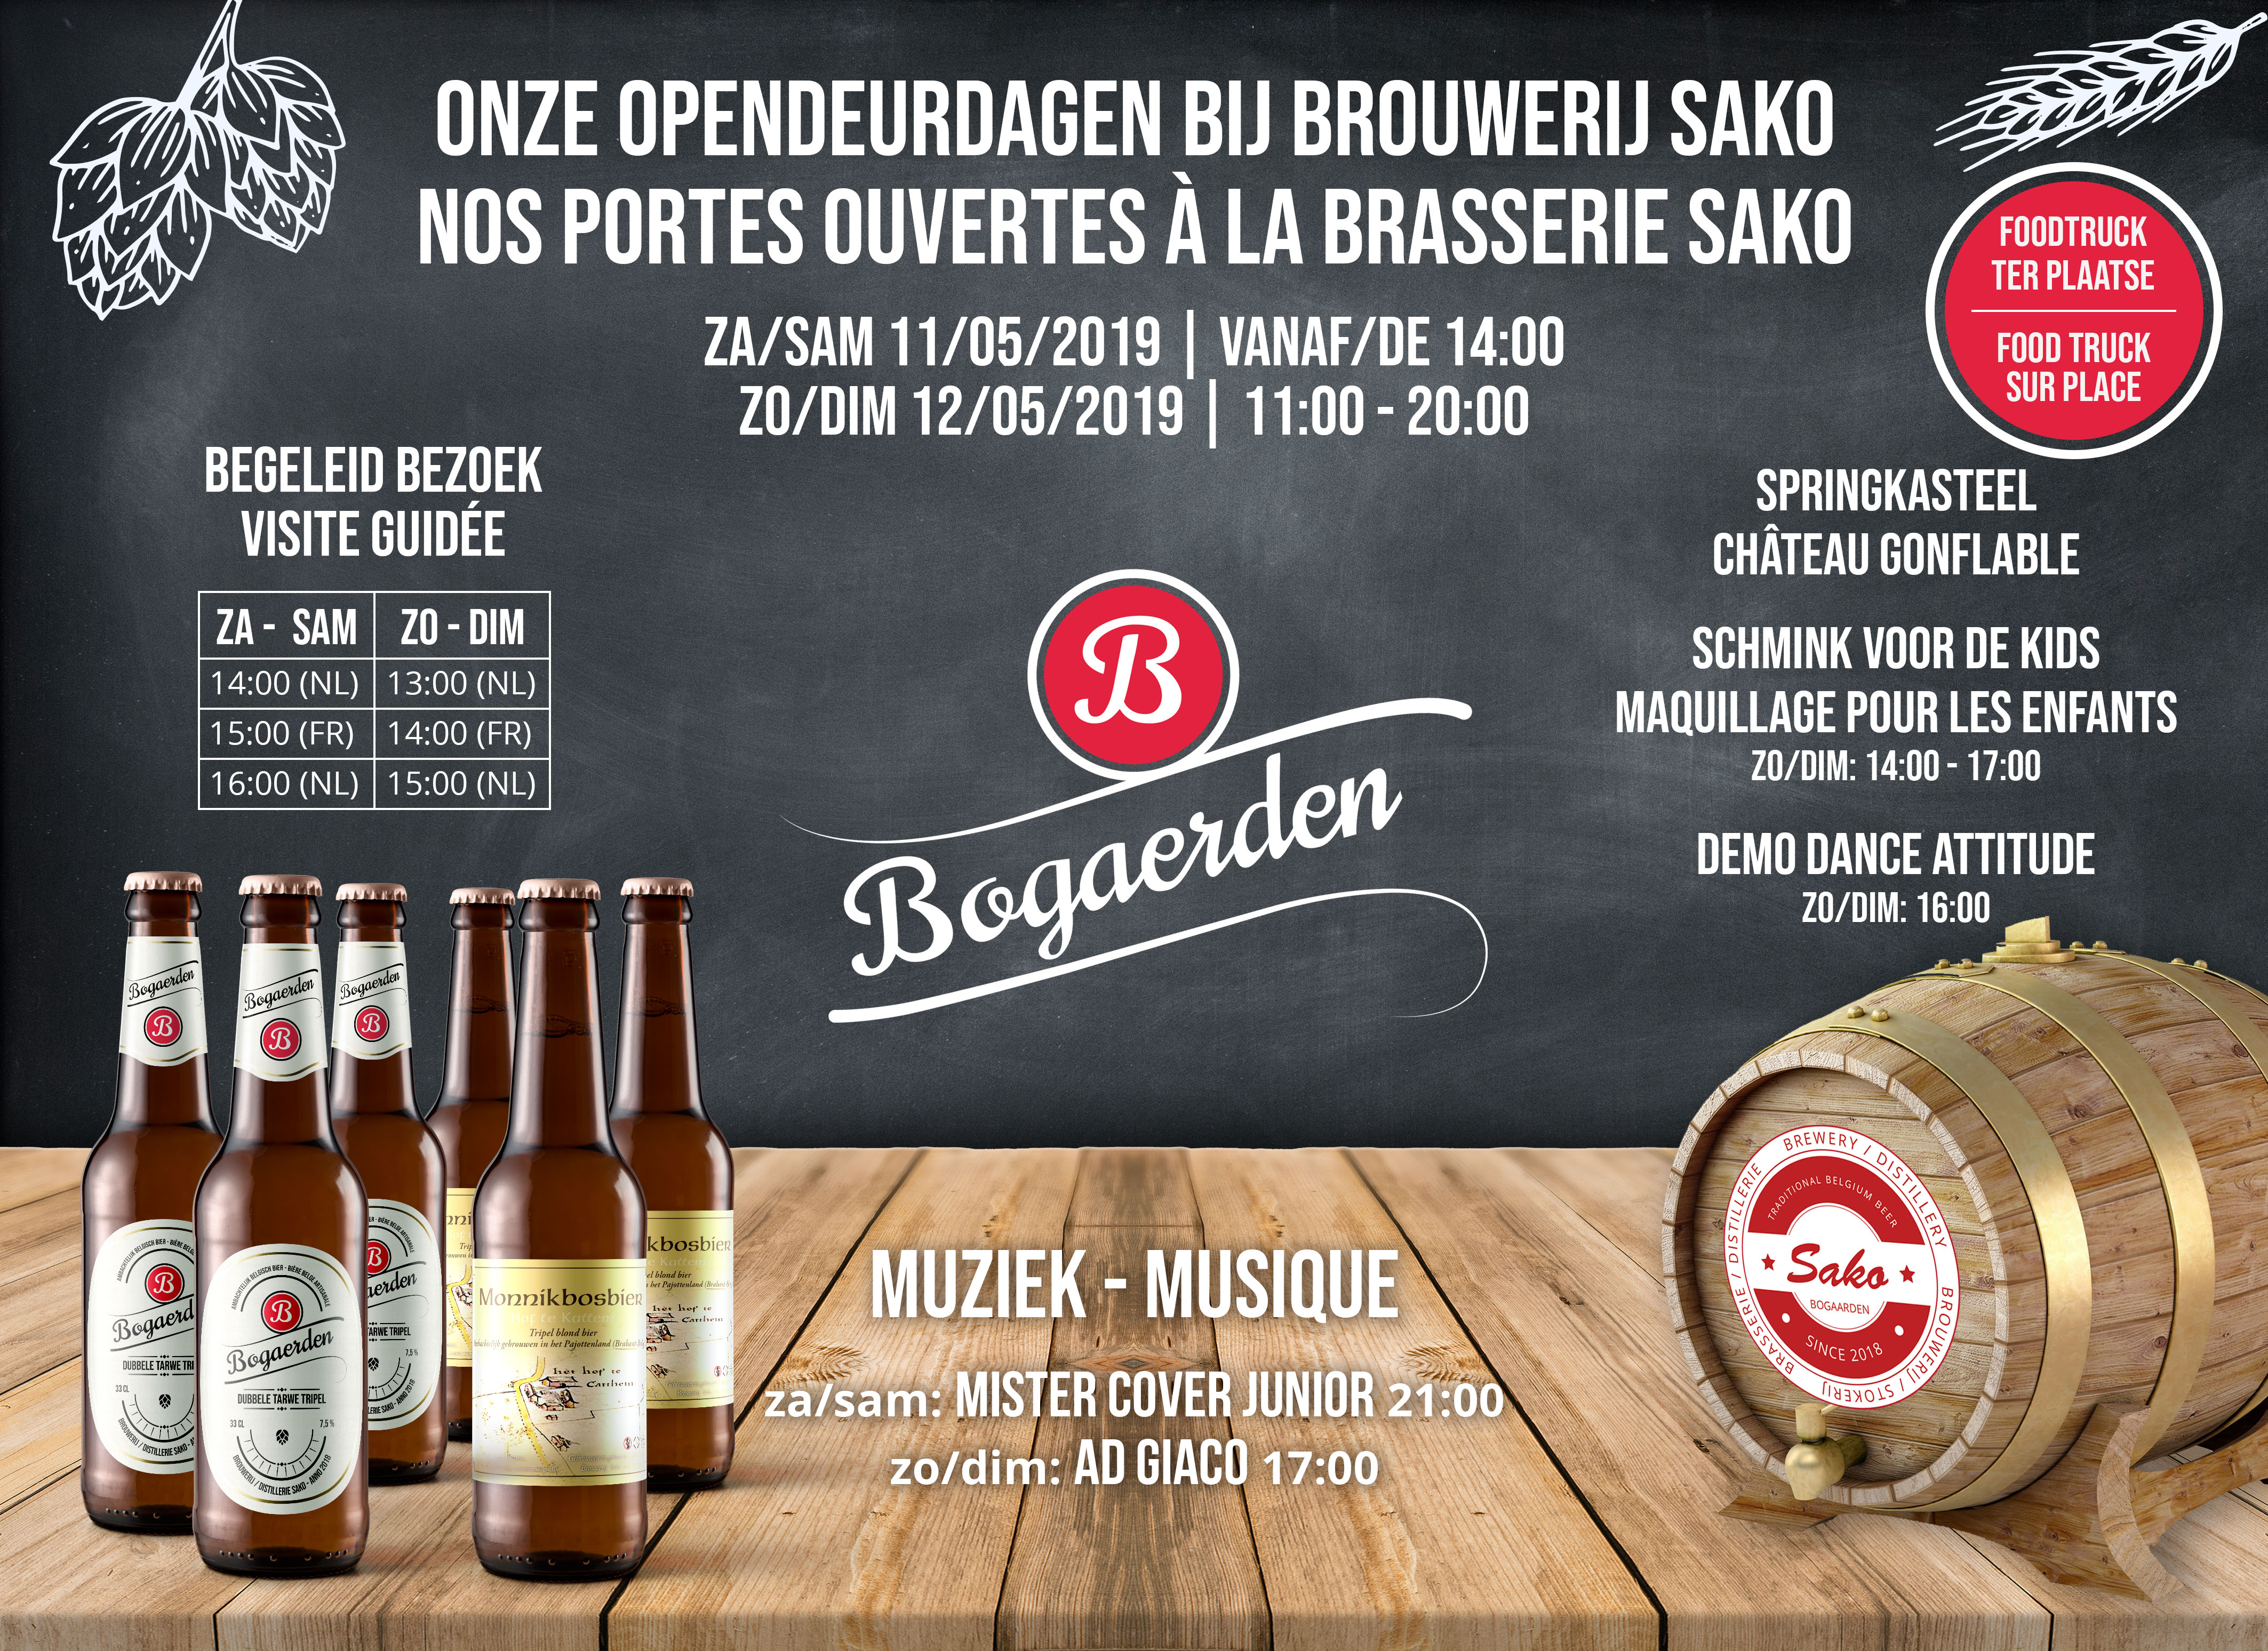 Open days at the Sako Brewery